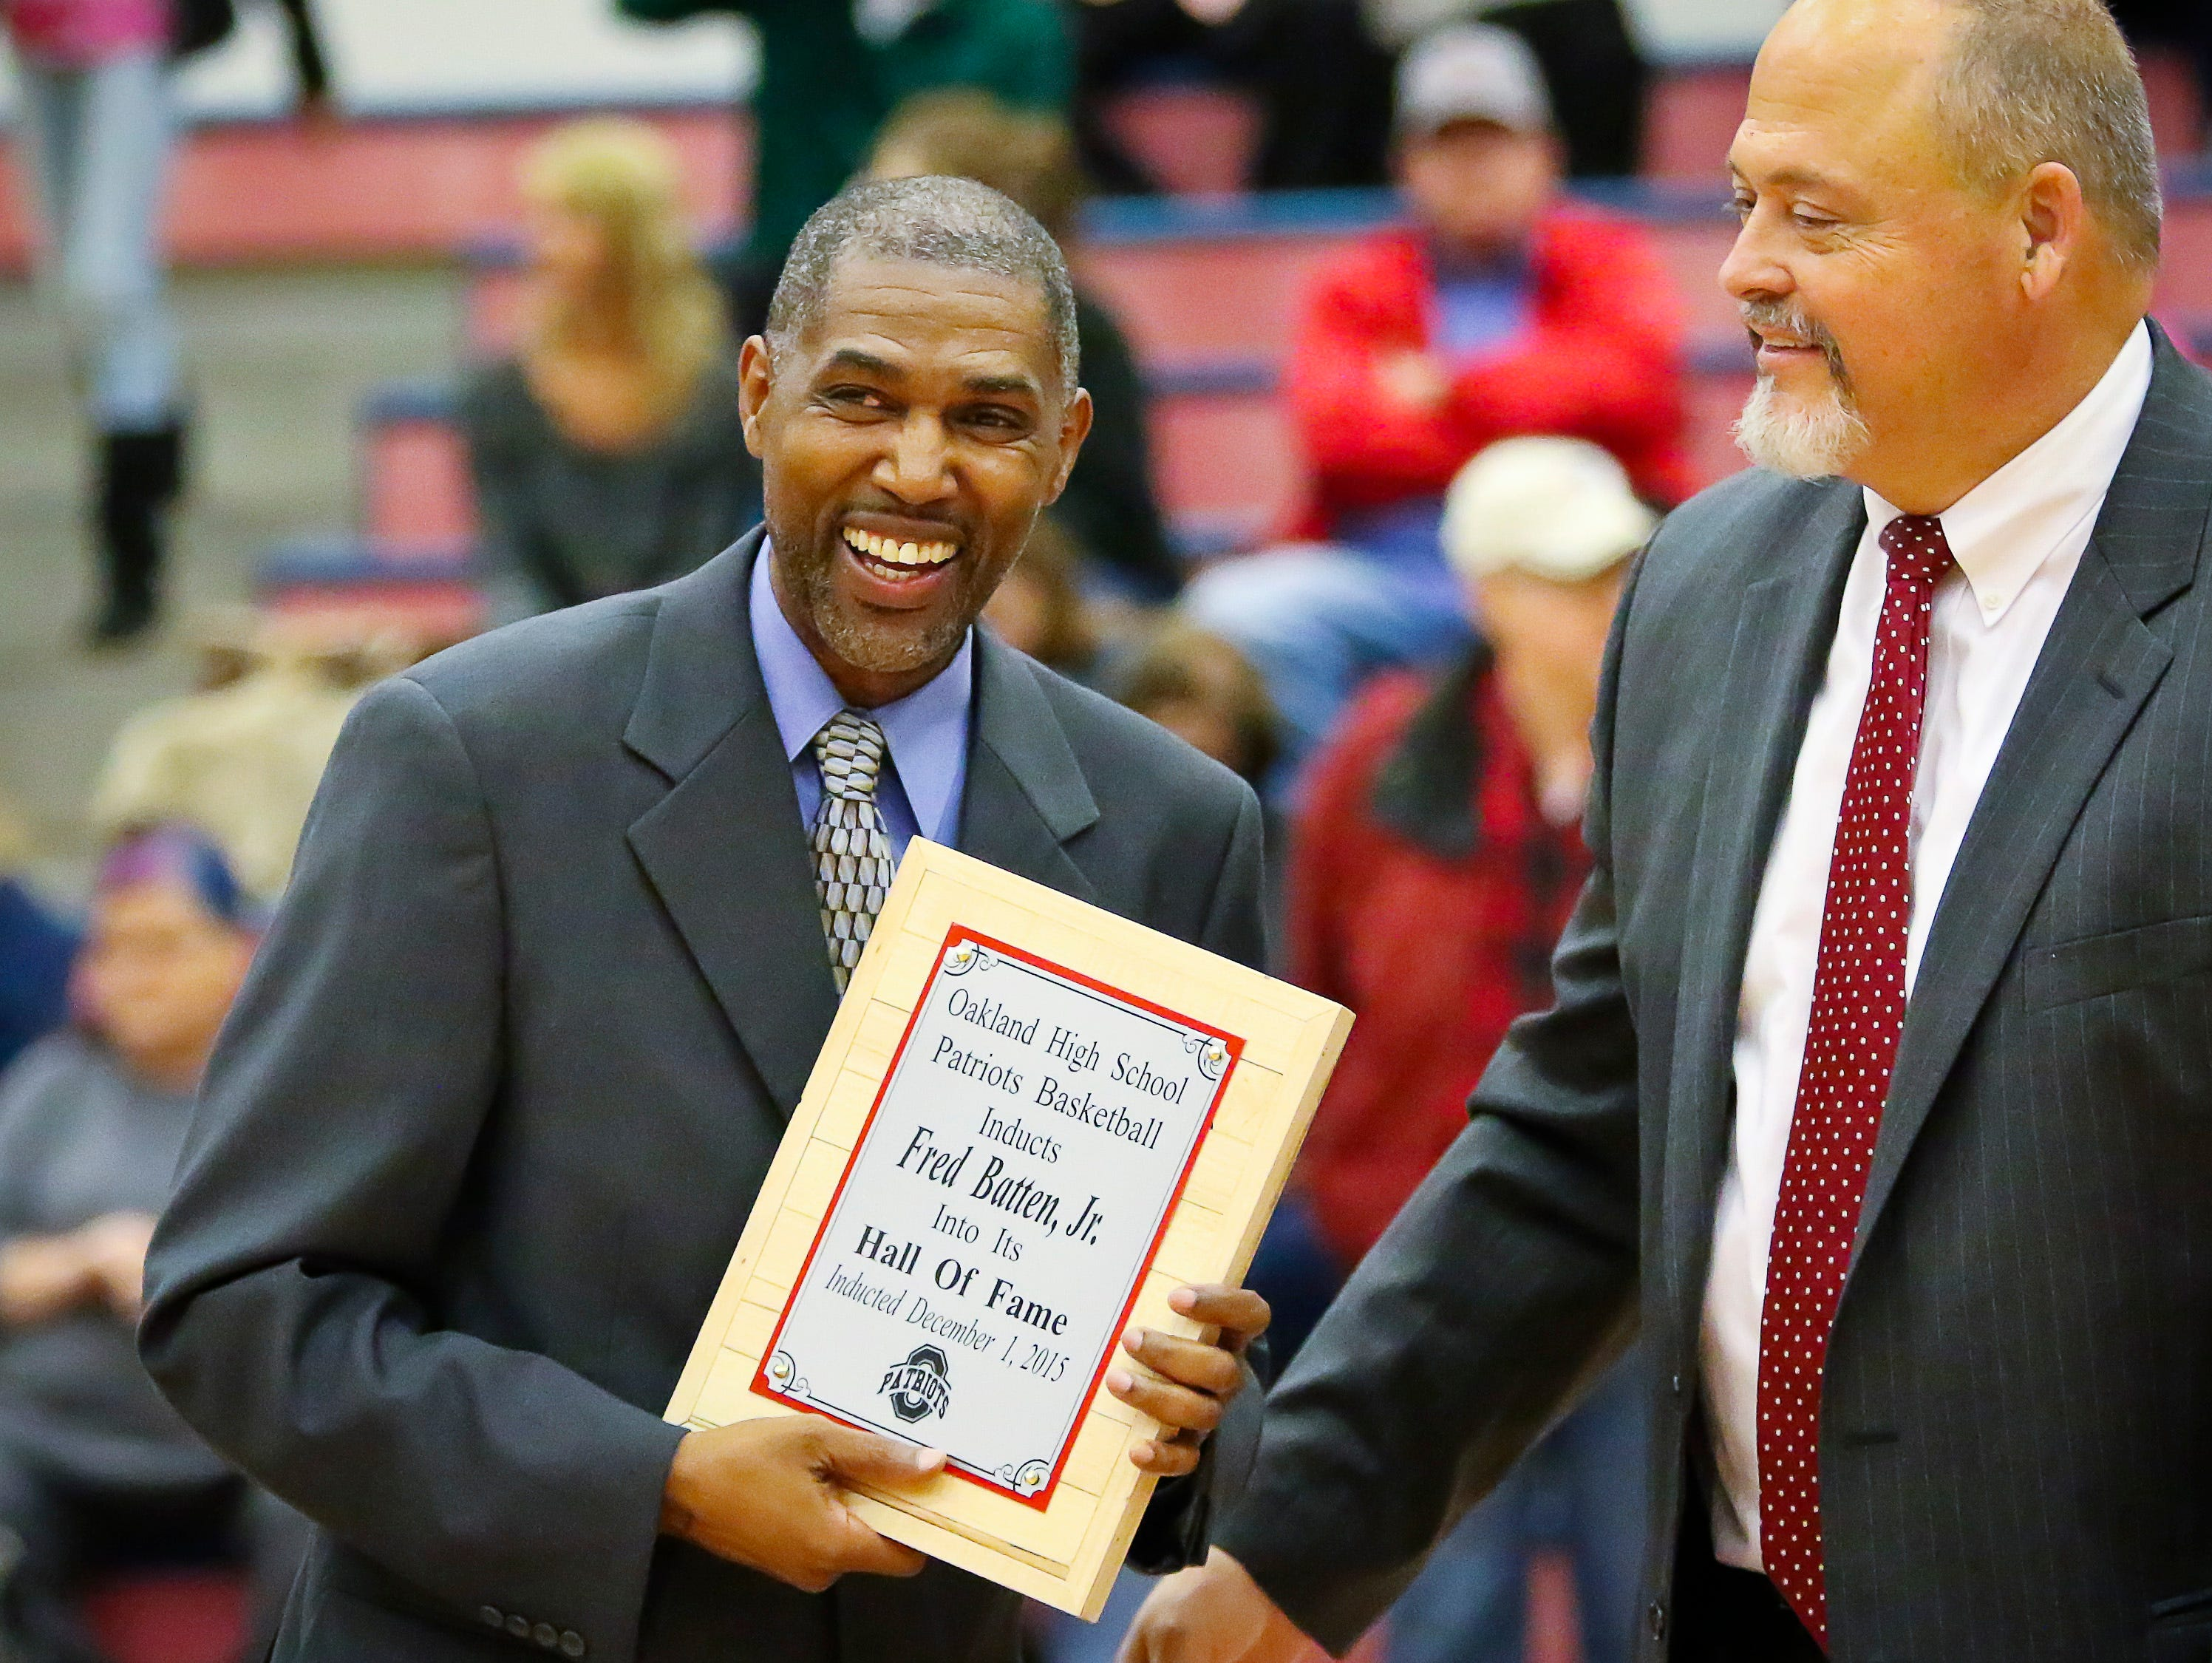 Former Oakland standout Fred Batten Jr. receives a plaque signifying his induction into the Oakland High Basketball Hall of Fame.